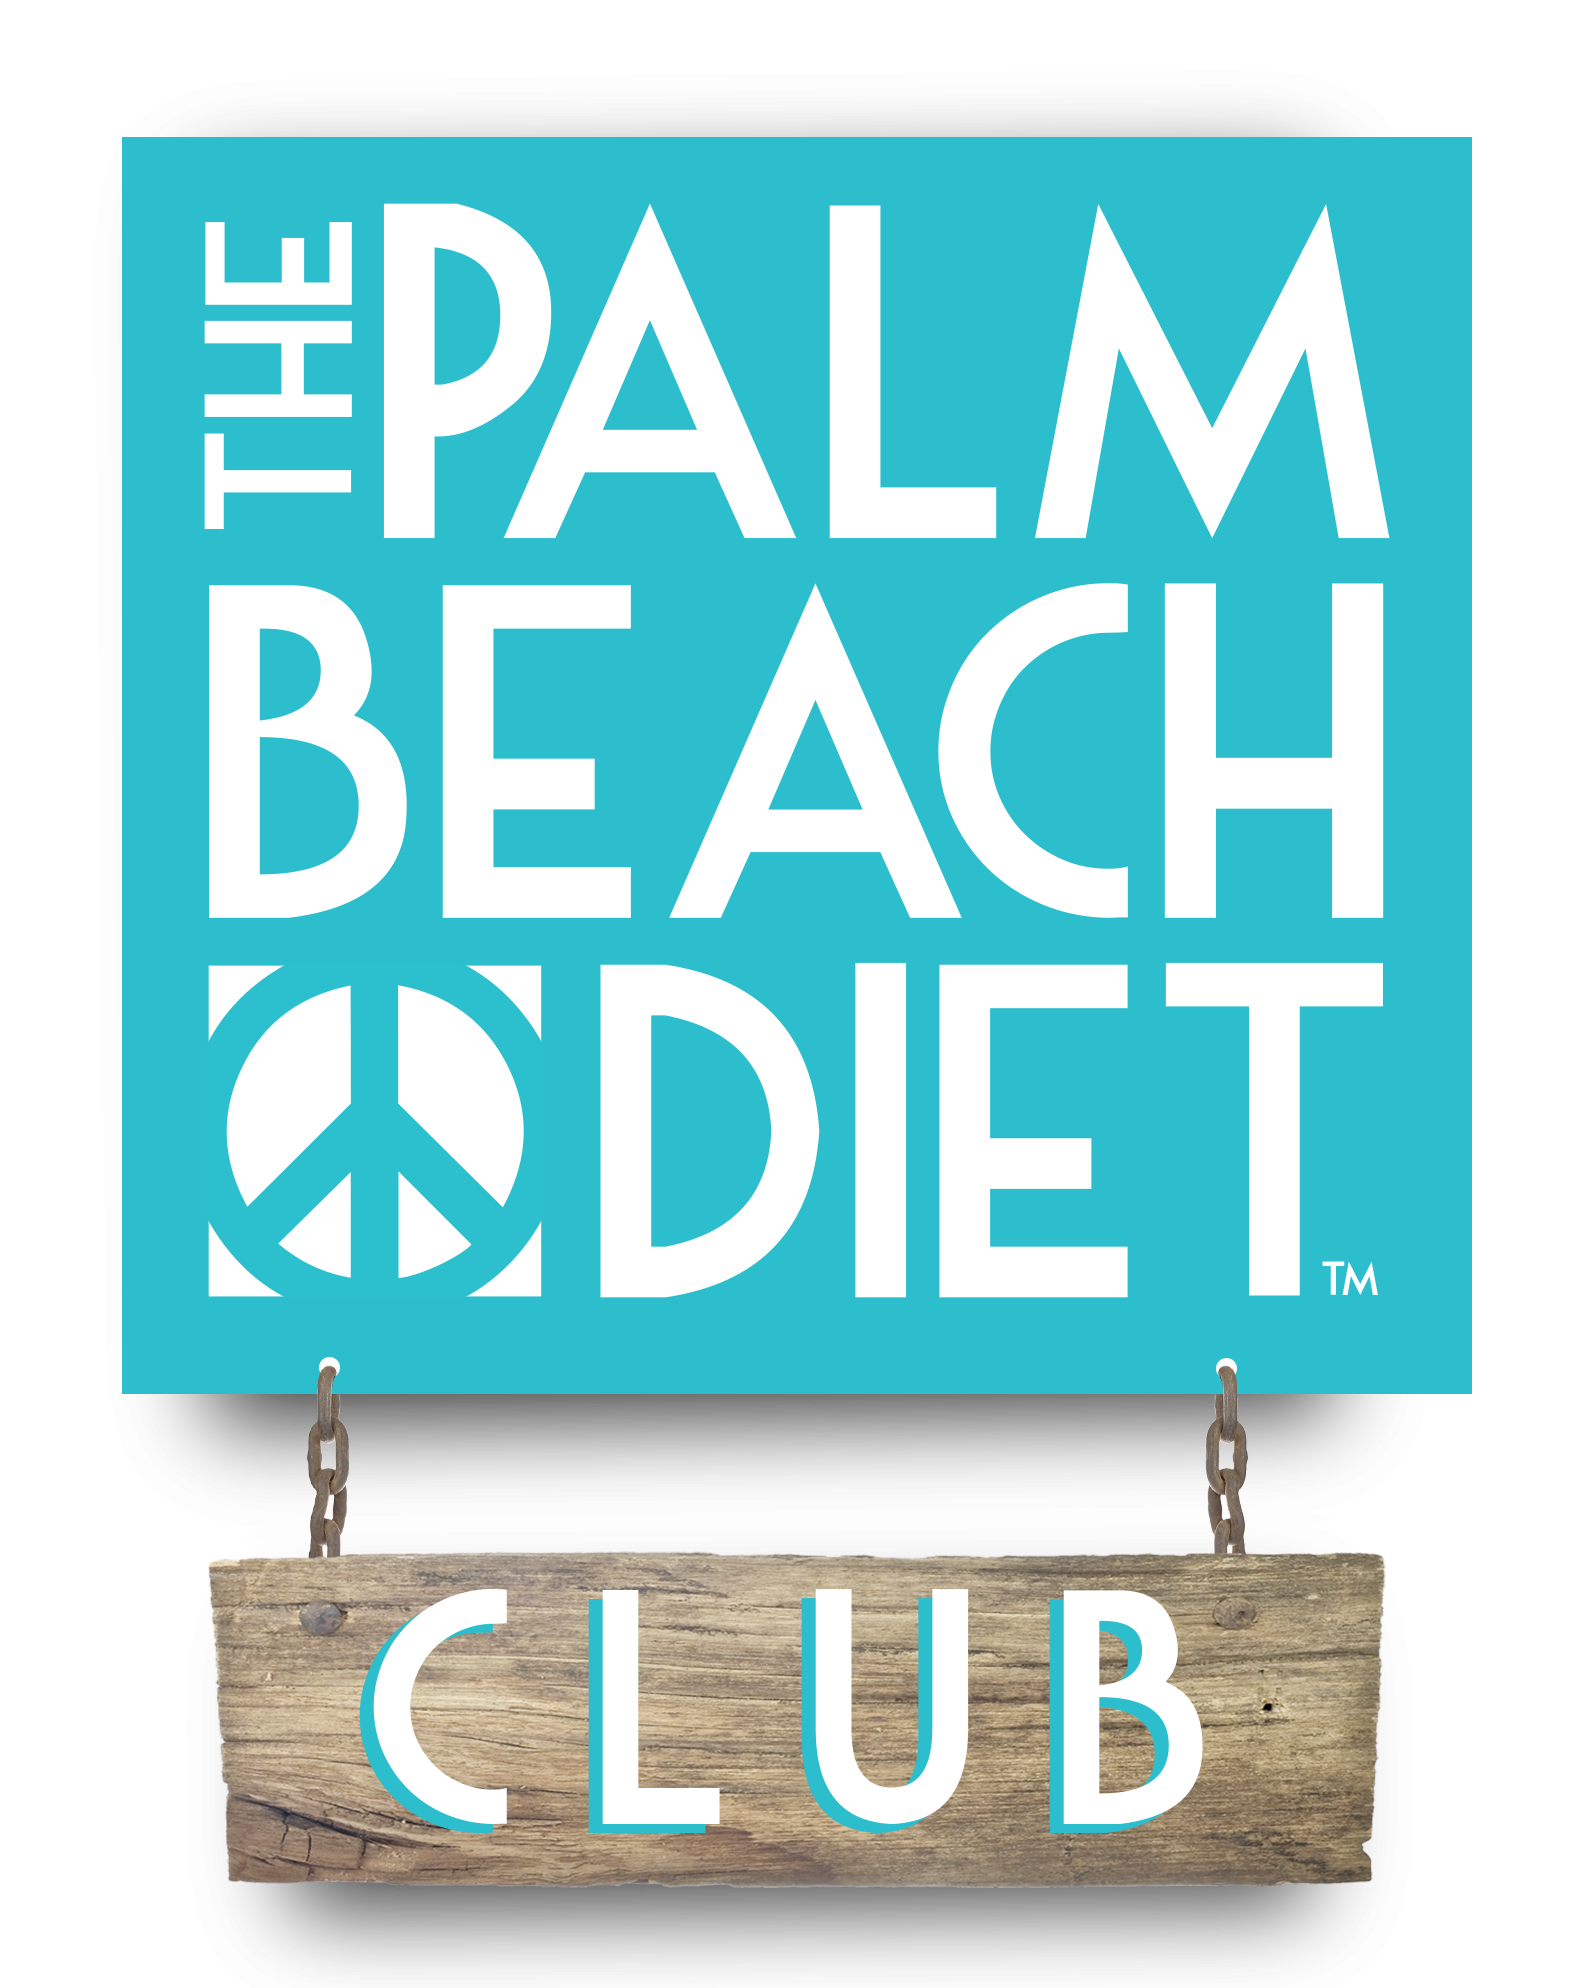 Jay Robb Palm Beach Diet Club logo